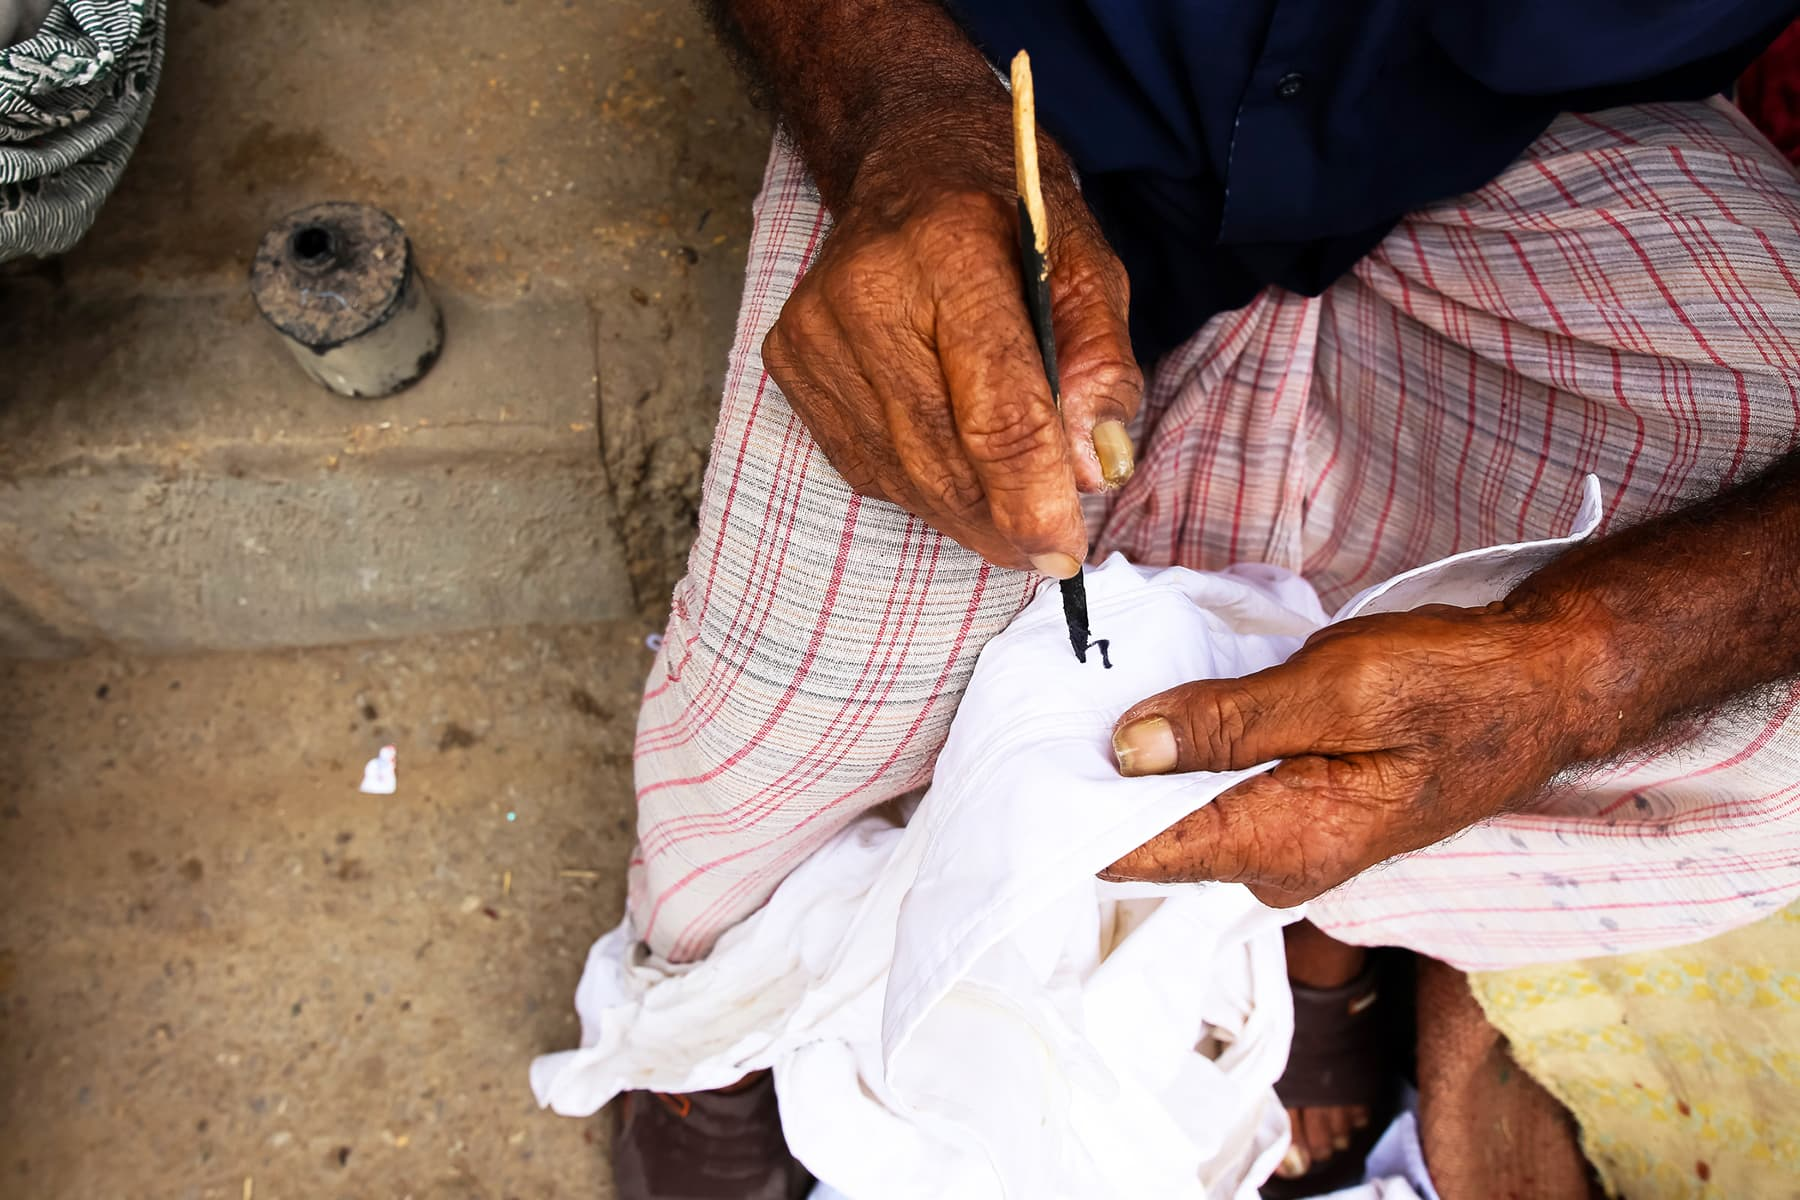 Hanif marks each cloth to categorise them according to the batch number and owner.